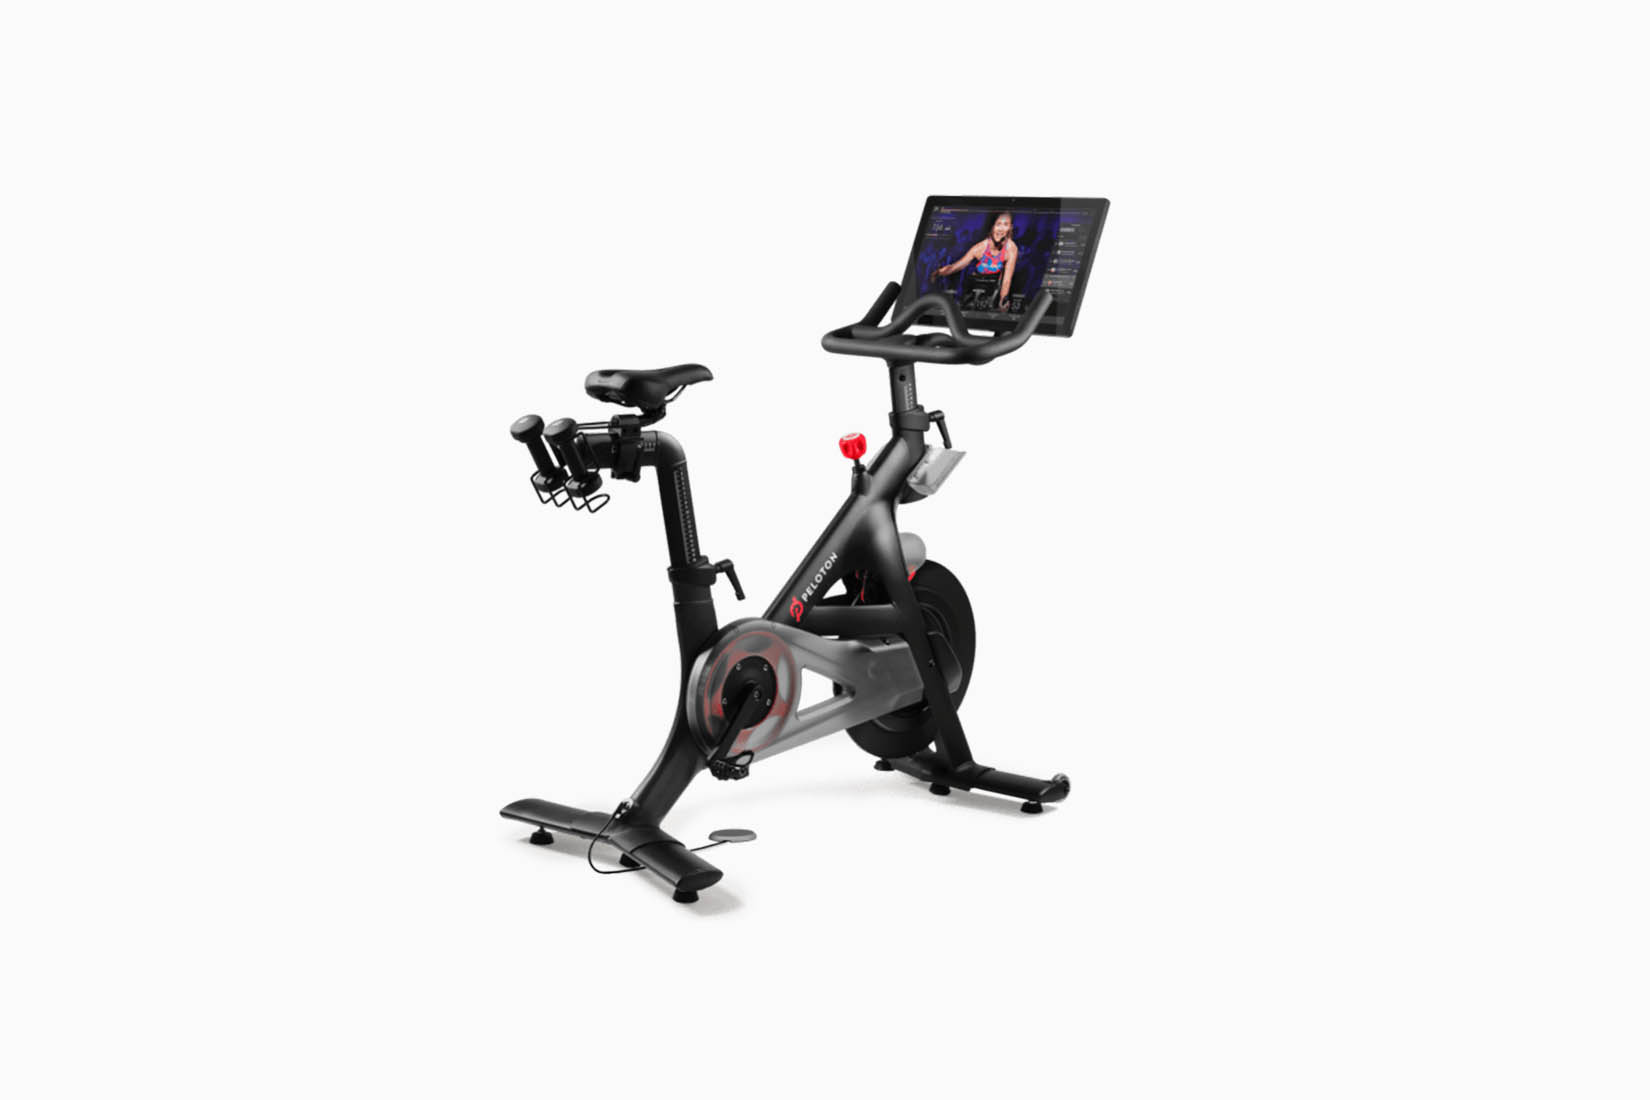 37 Home Gym Equipment For The Ultimate Workout (2021)